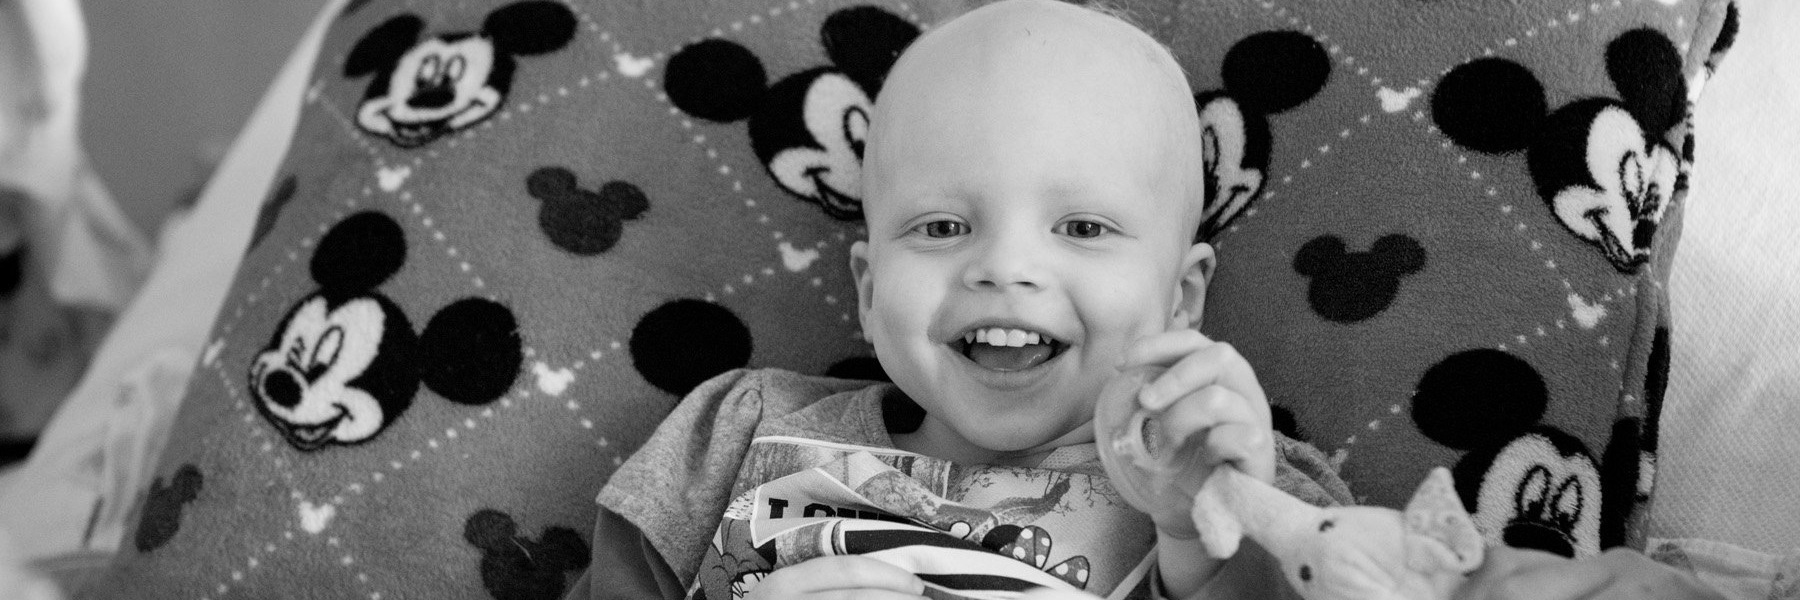 young cancer patient black and white